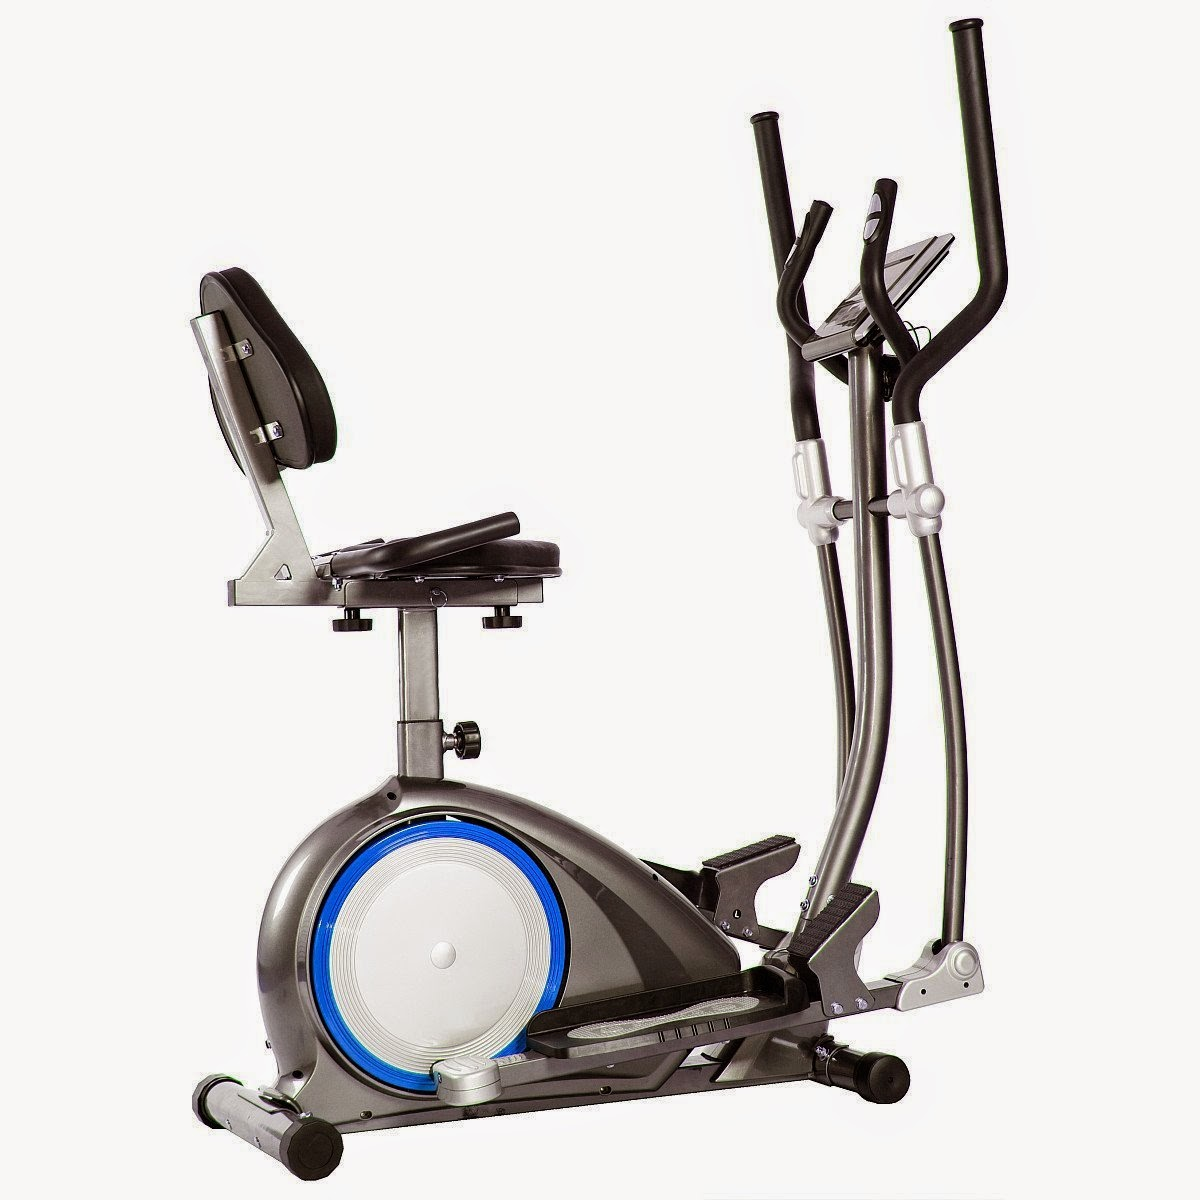 Body Power 3-in-1 Trio Trainer BRT6300, picture, image, review features and specifications